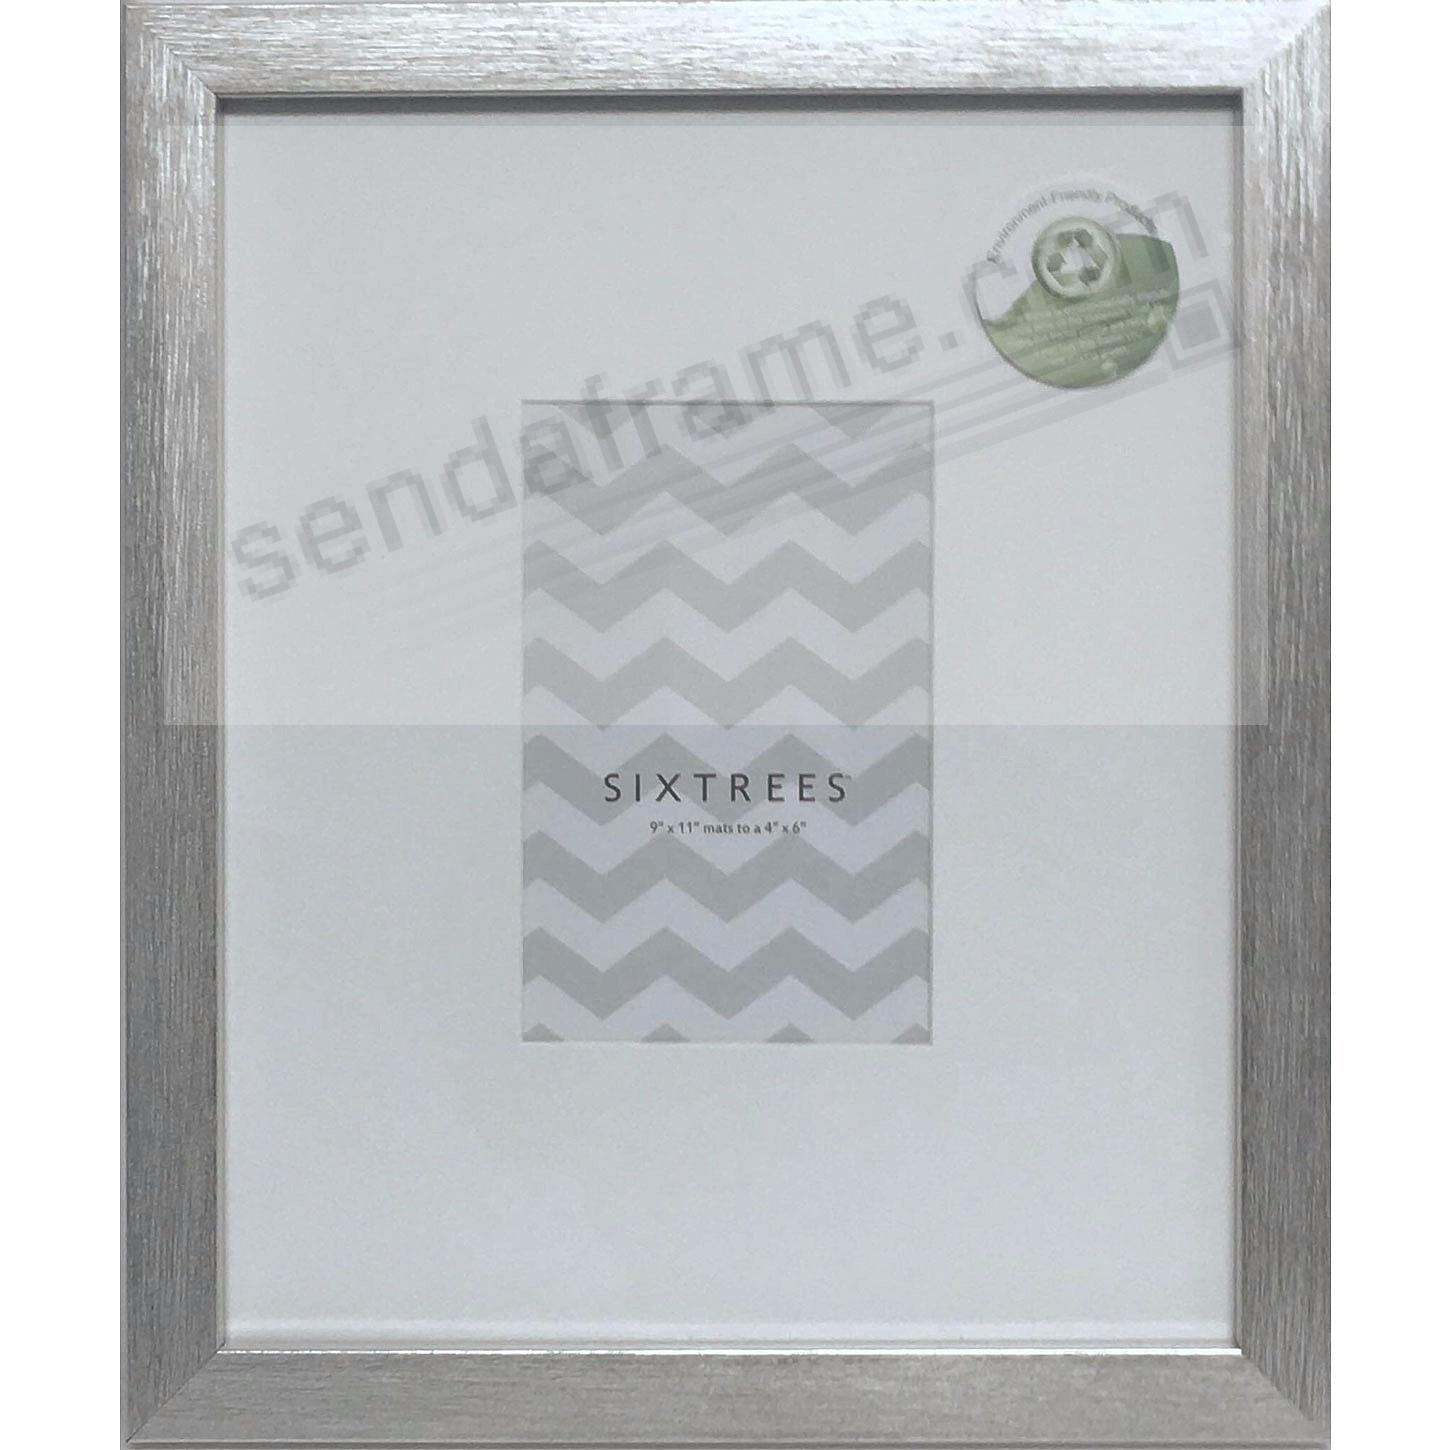 Brushed-Silver MATTED 9x11/4x6 frame by SIXTREES®